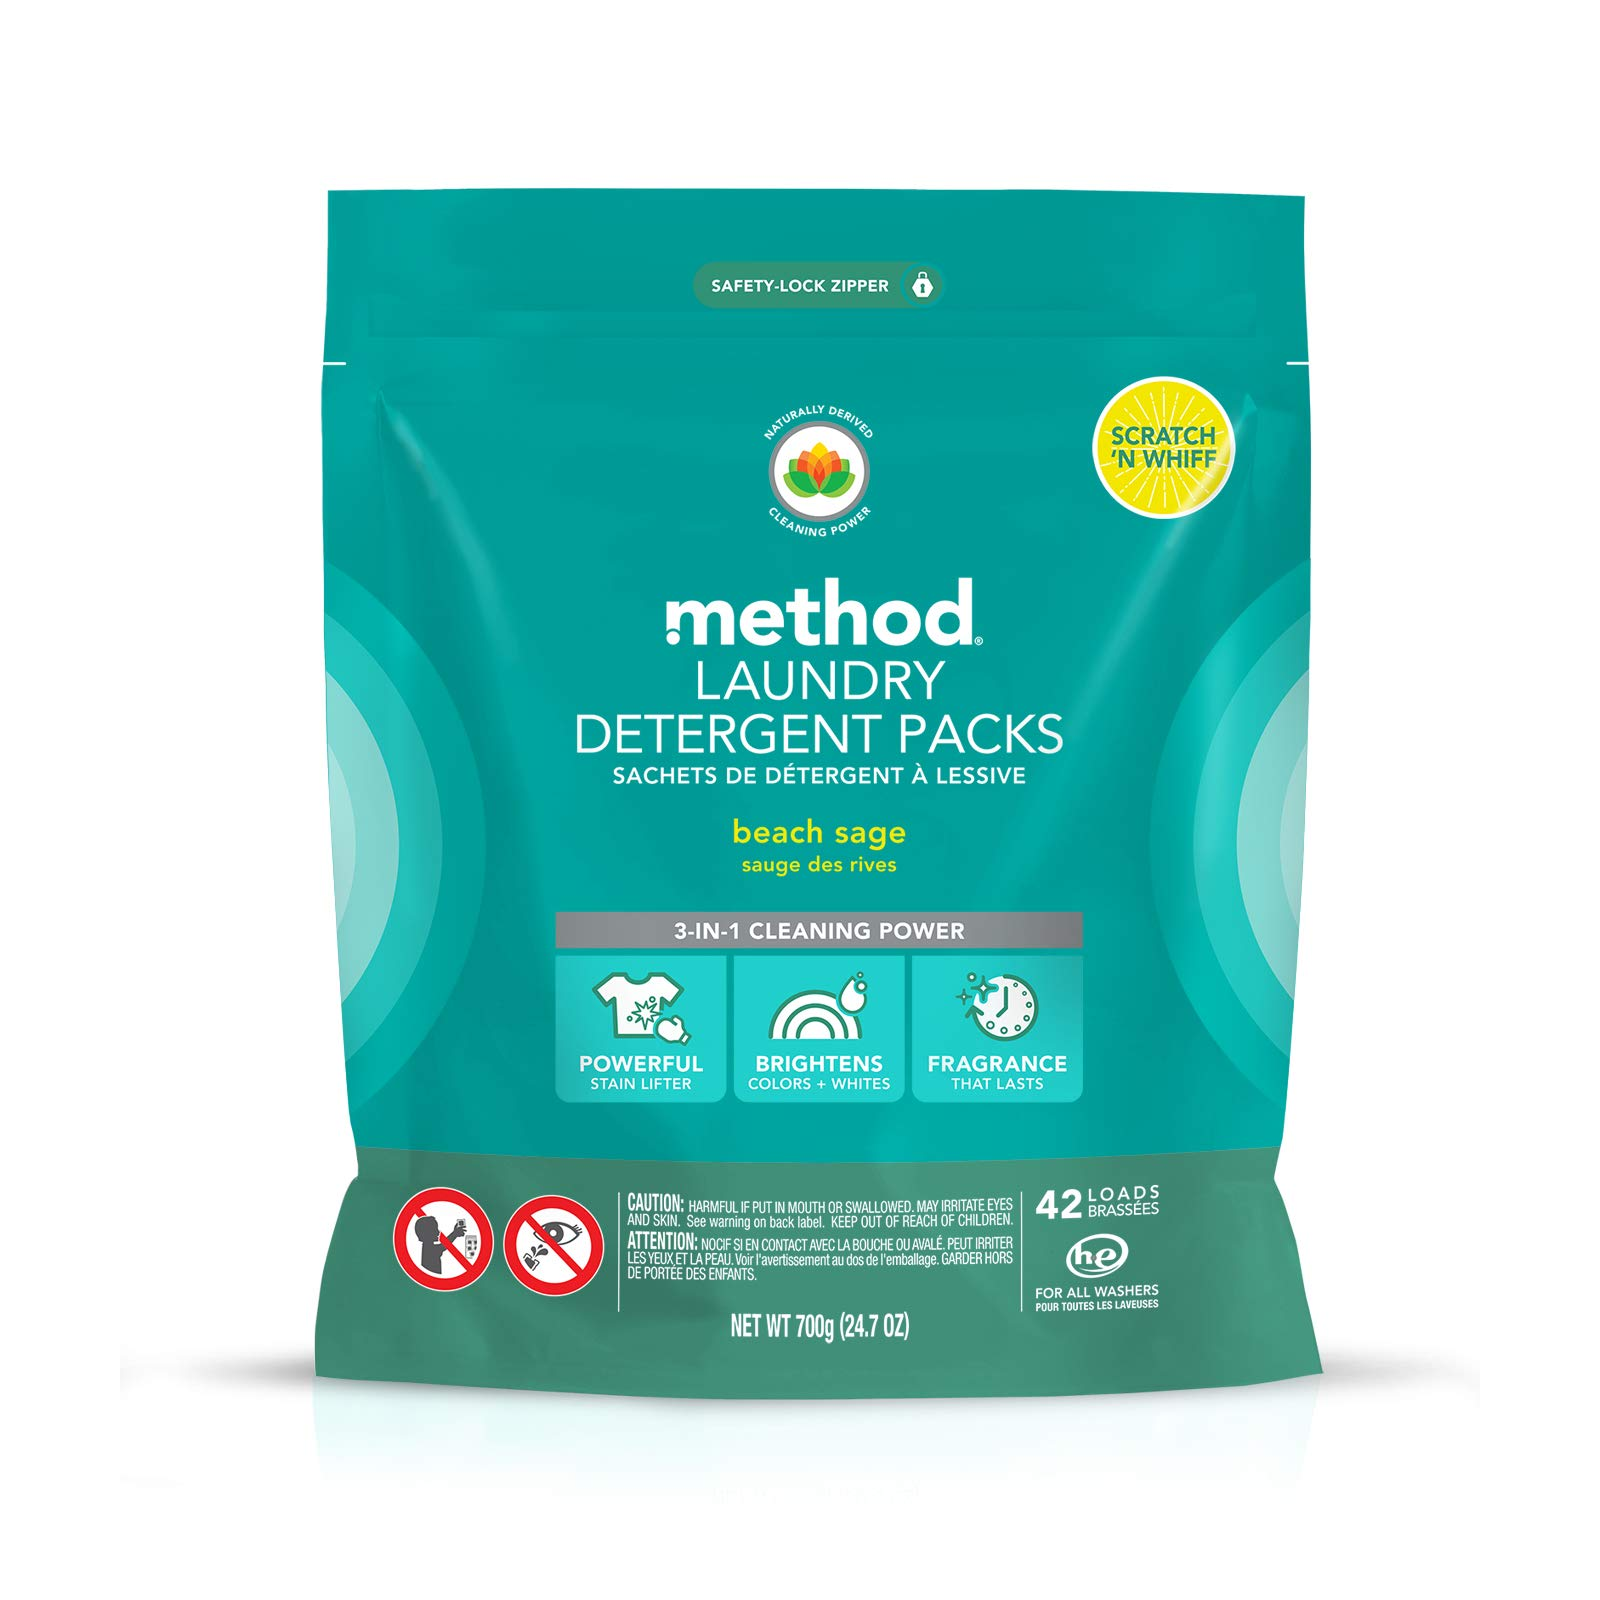 Method Laundry Detergent Packs, Beach Sage, 42 Loads by Method